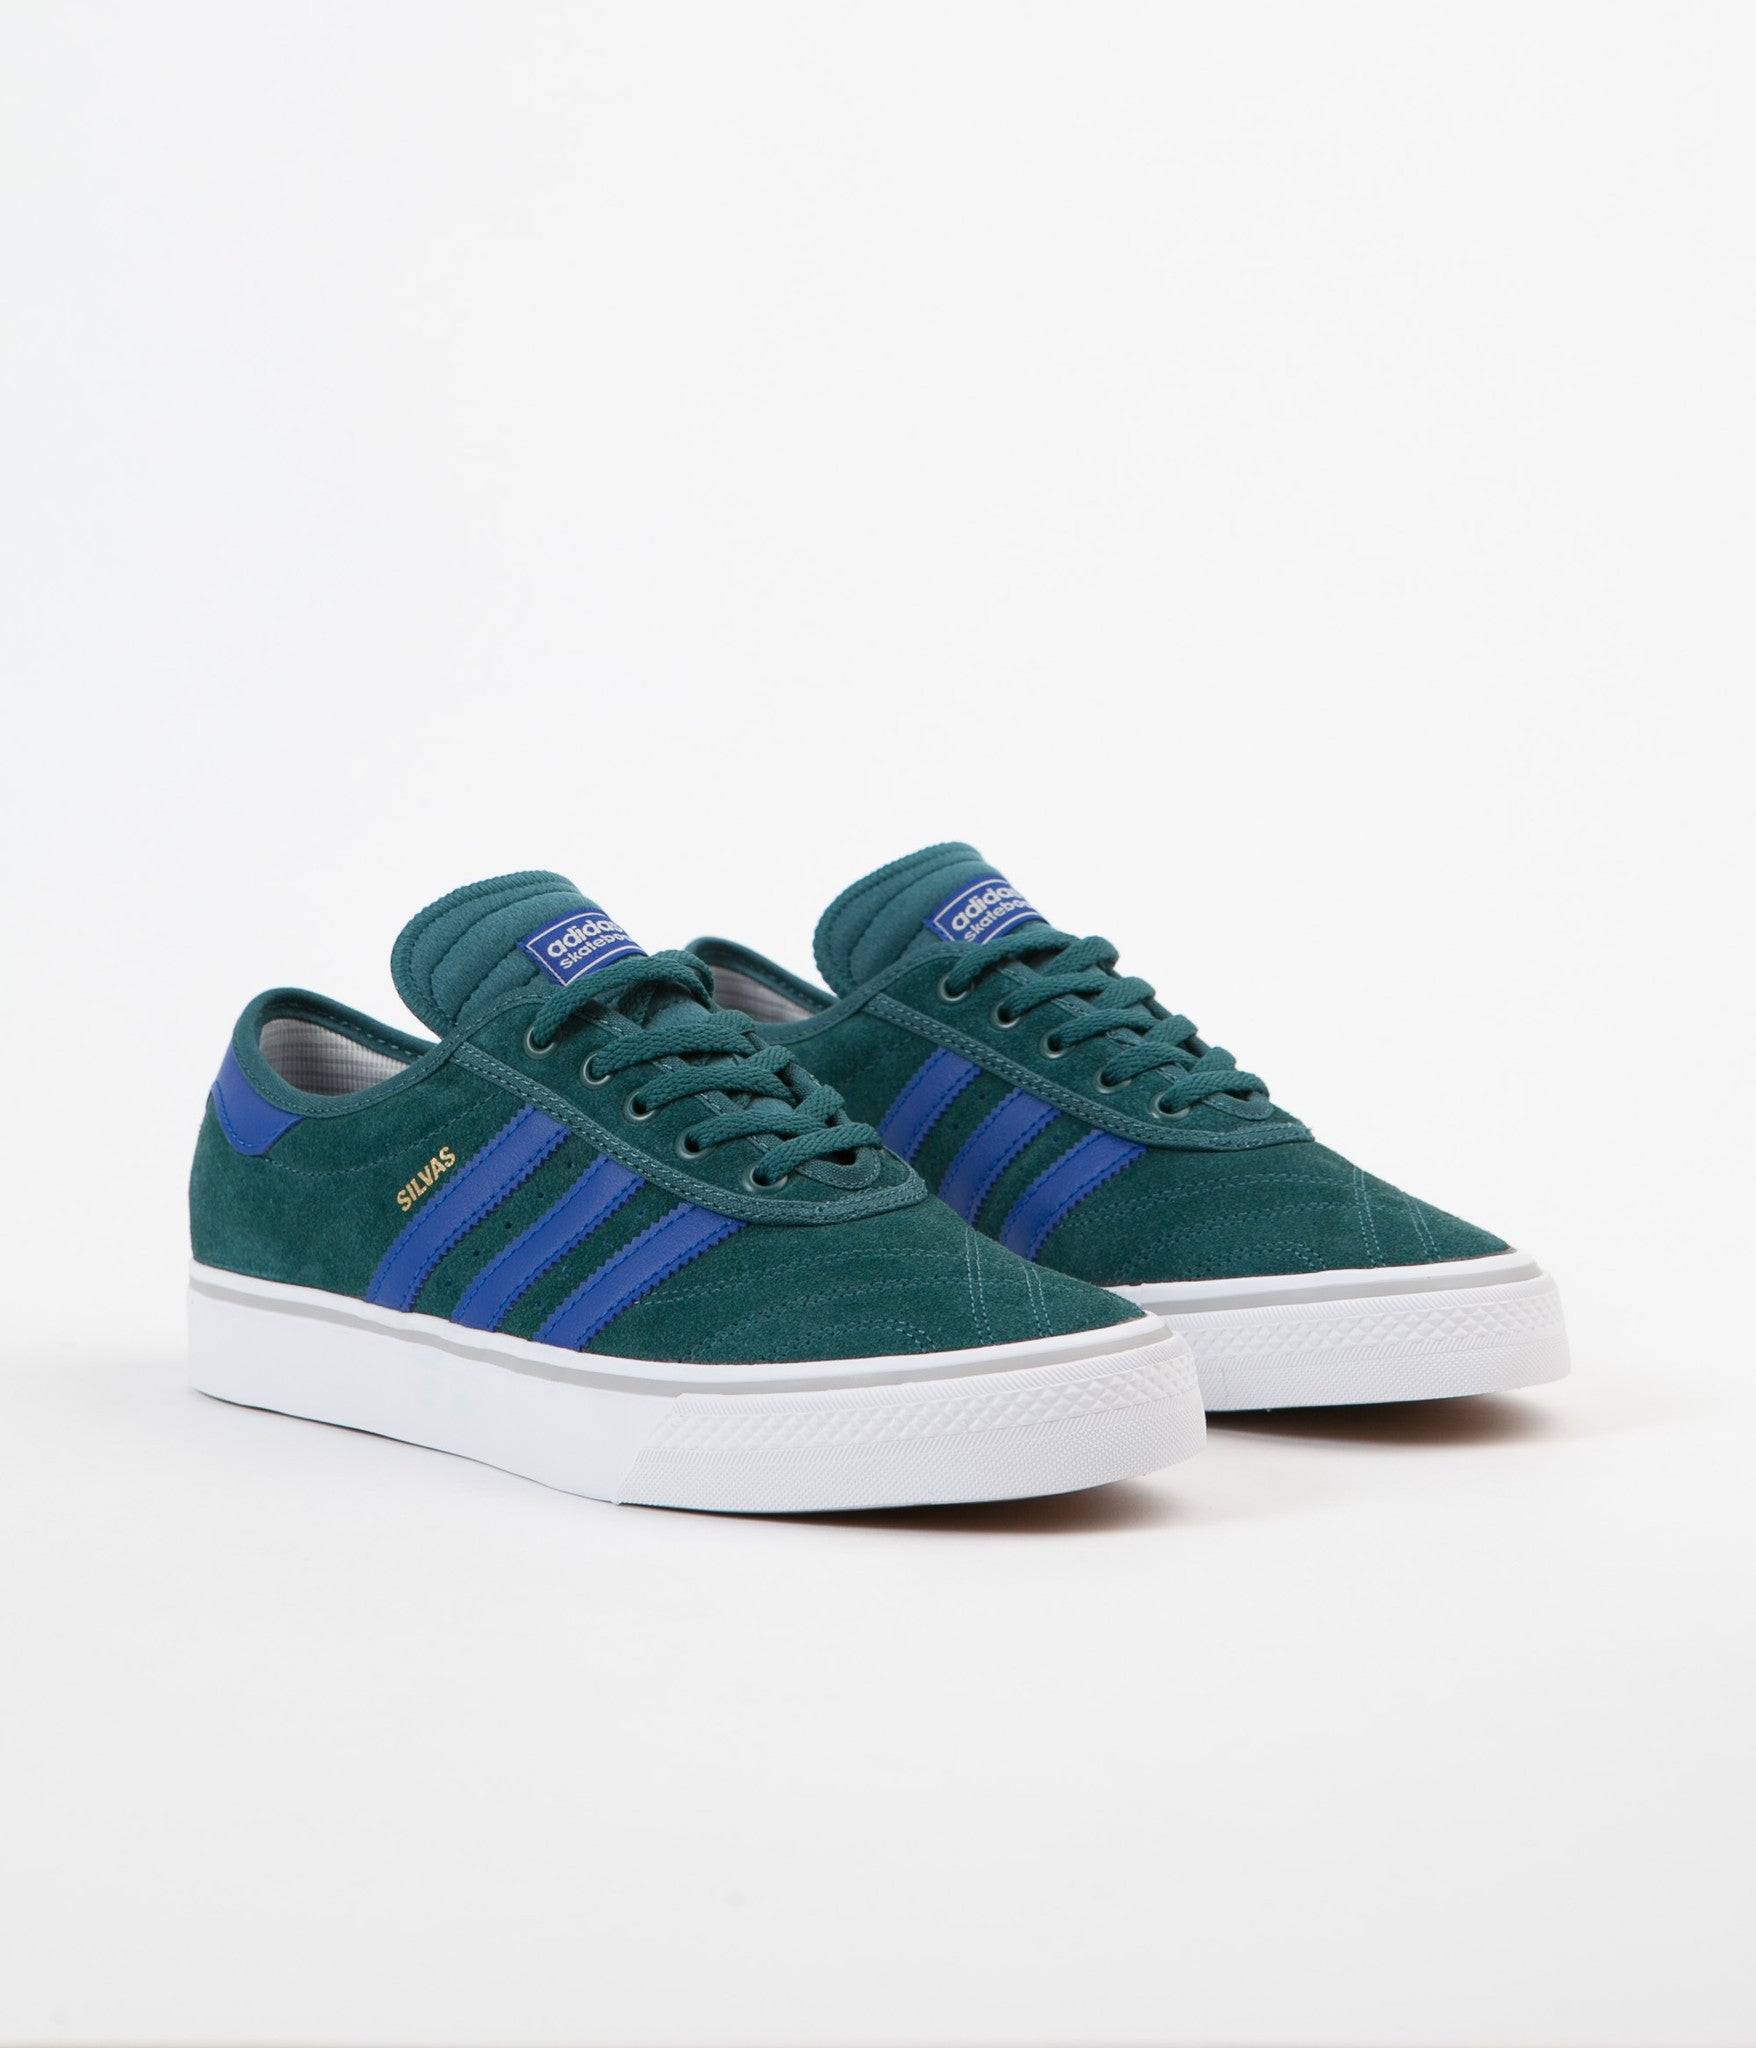 Adidas Adi-Ease Miles Silvas Premiere Adv Shoes - Tech Green / Collegiate Royal / White